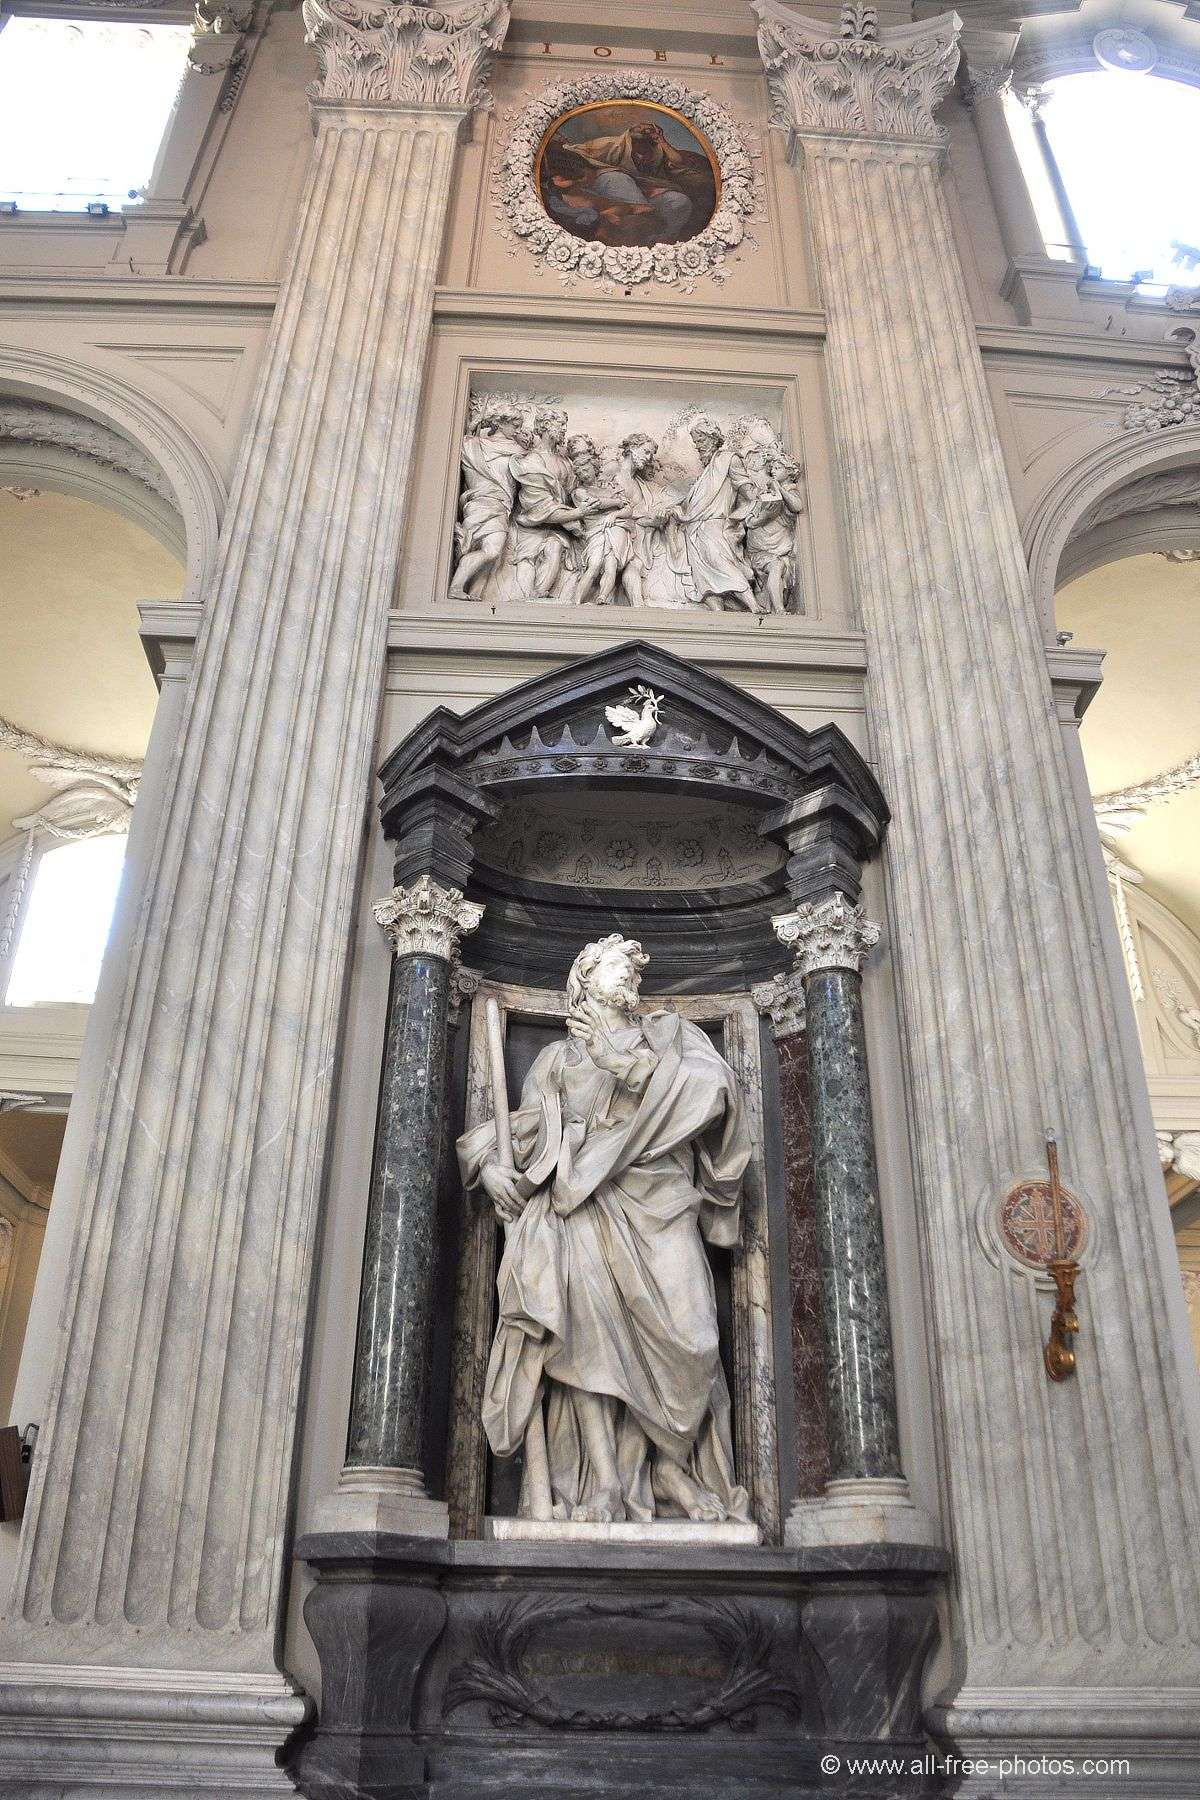 Saint Jacob -Basilica of St. John Lateran - Rome